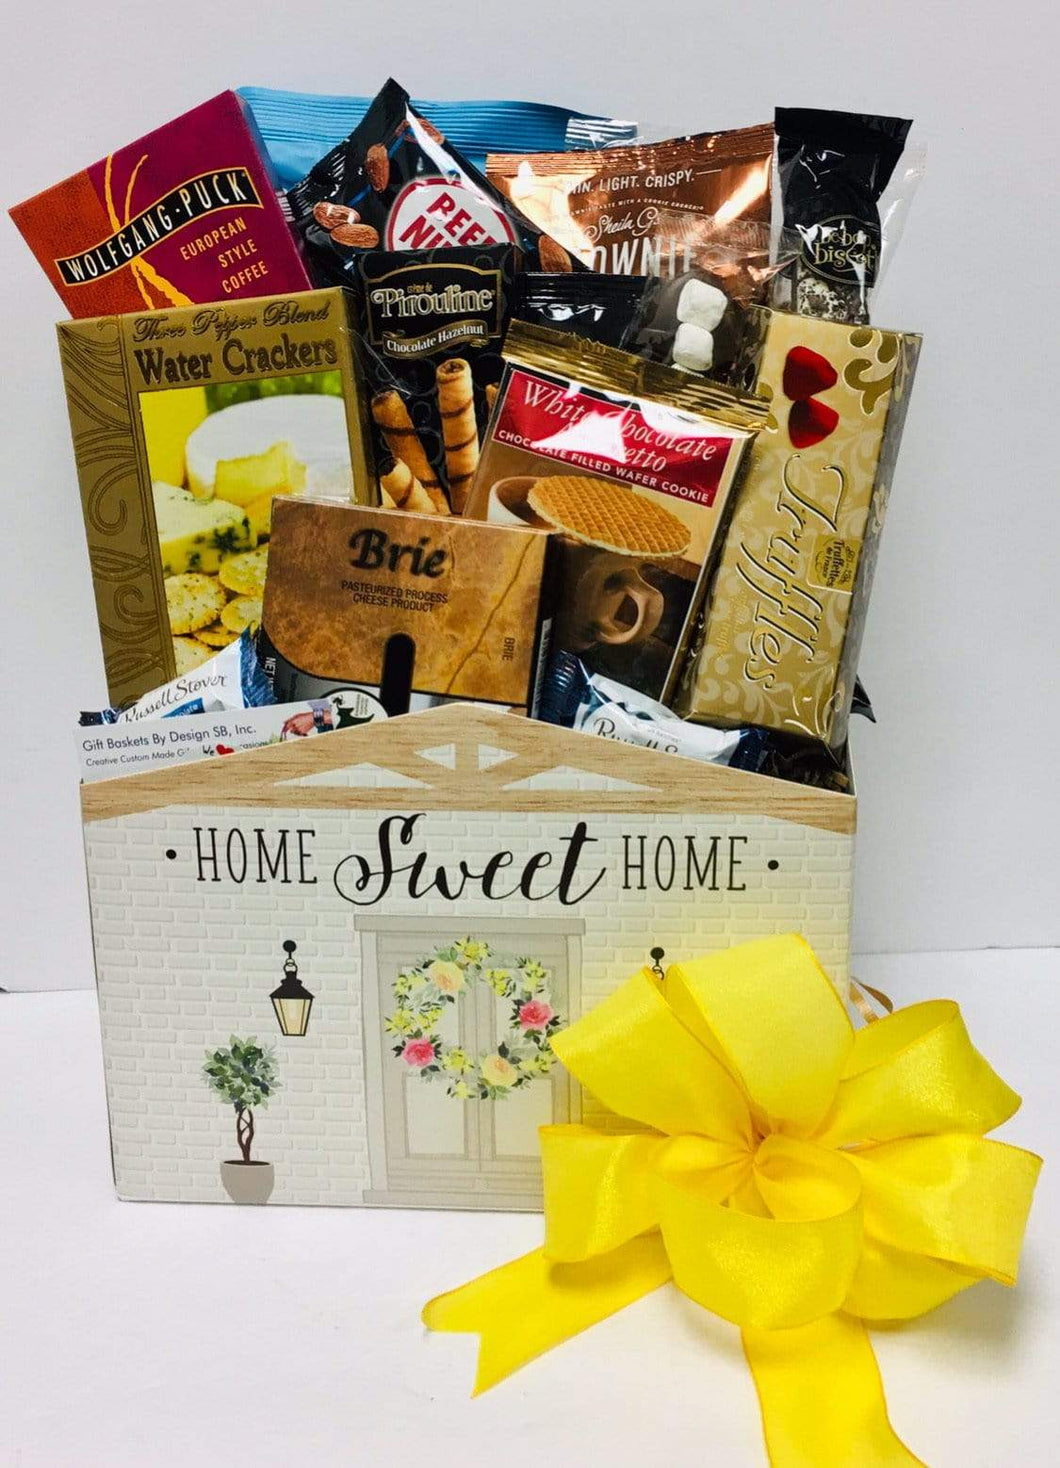 Home Sweet Home*New- 2 Style - Gift Baskets By Design SB, Inc.